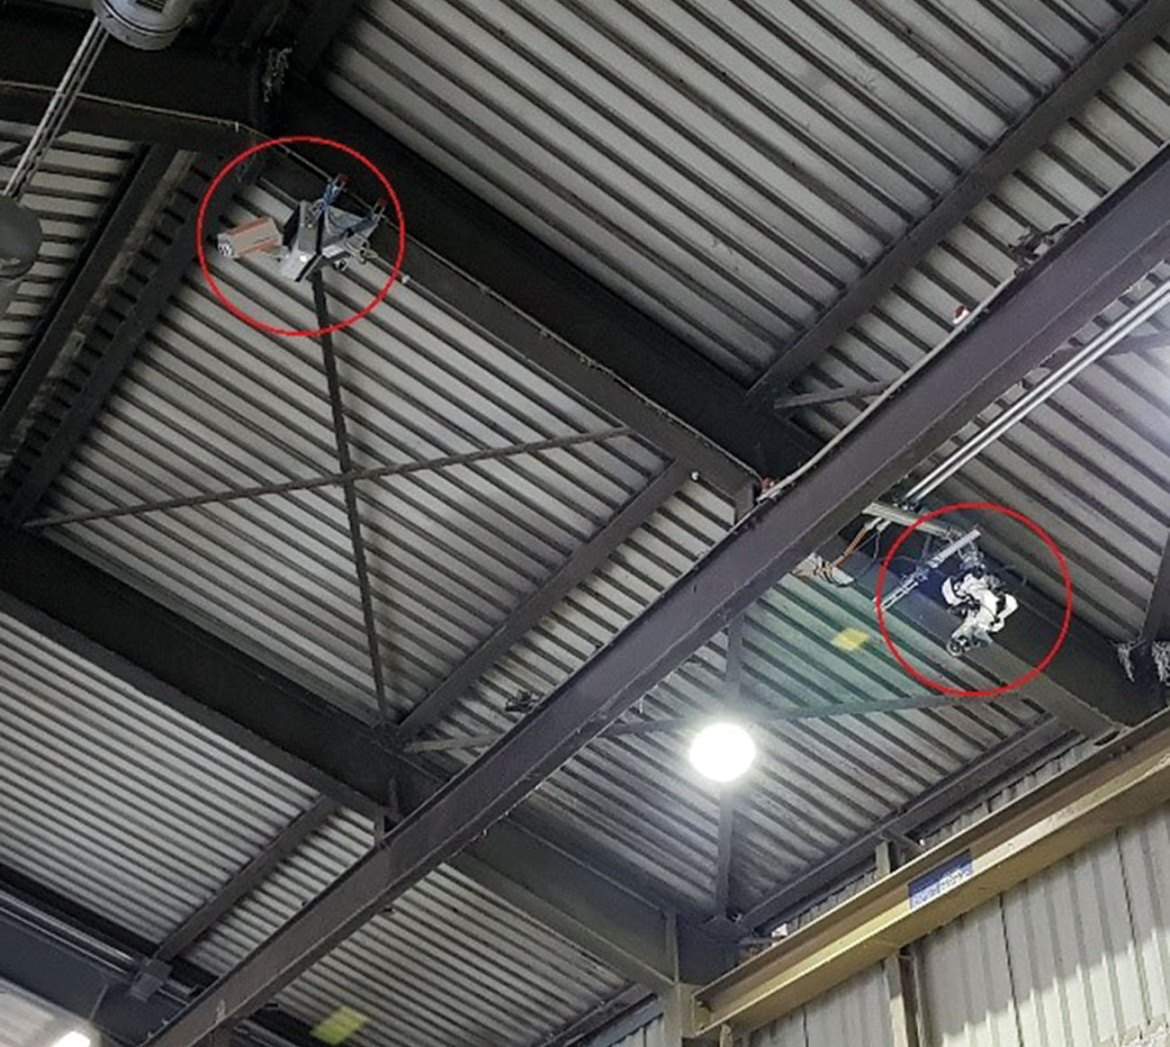 Figure 5: PYROsmart heat-detection system and remote-controlled monitor in recycling plant.